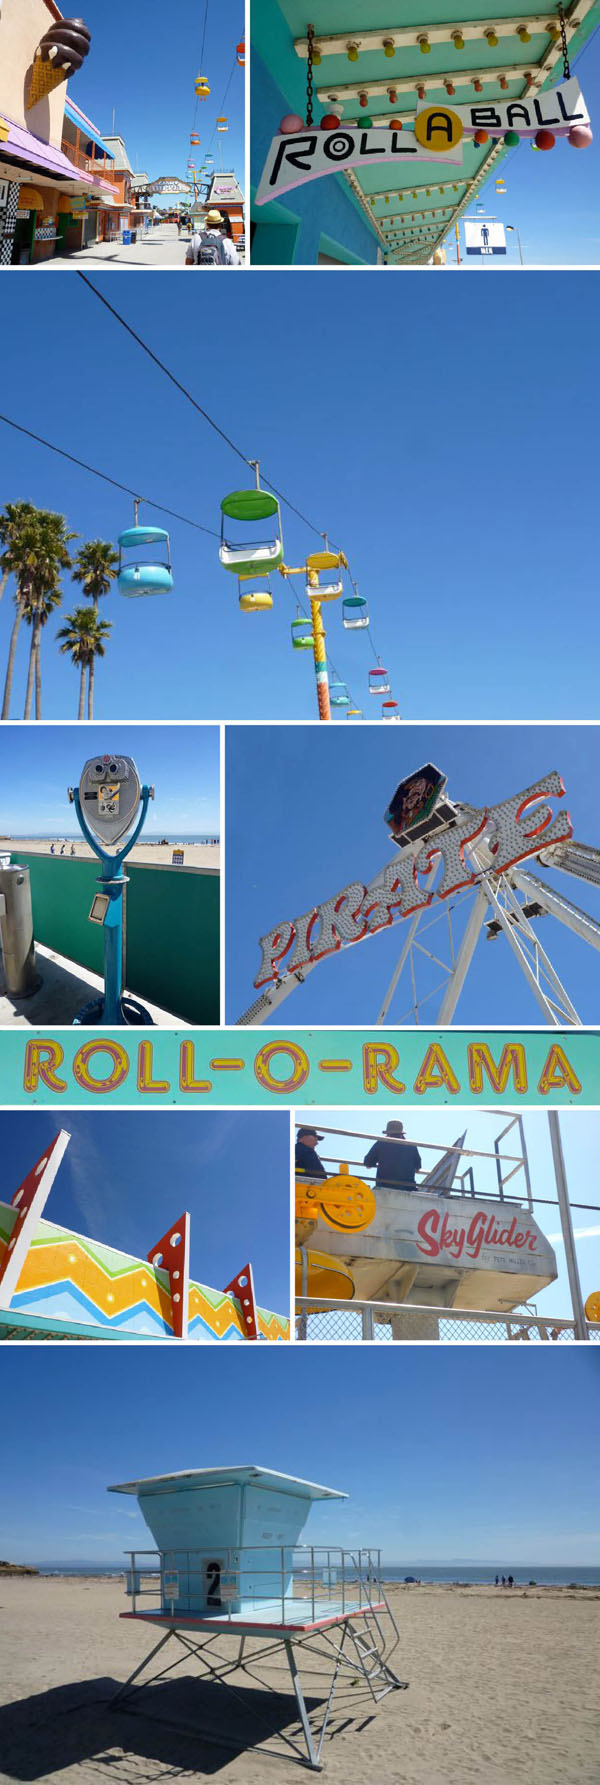 SantaCruz_boardwalk_RPRKR